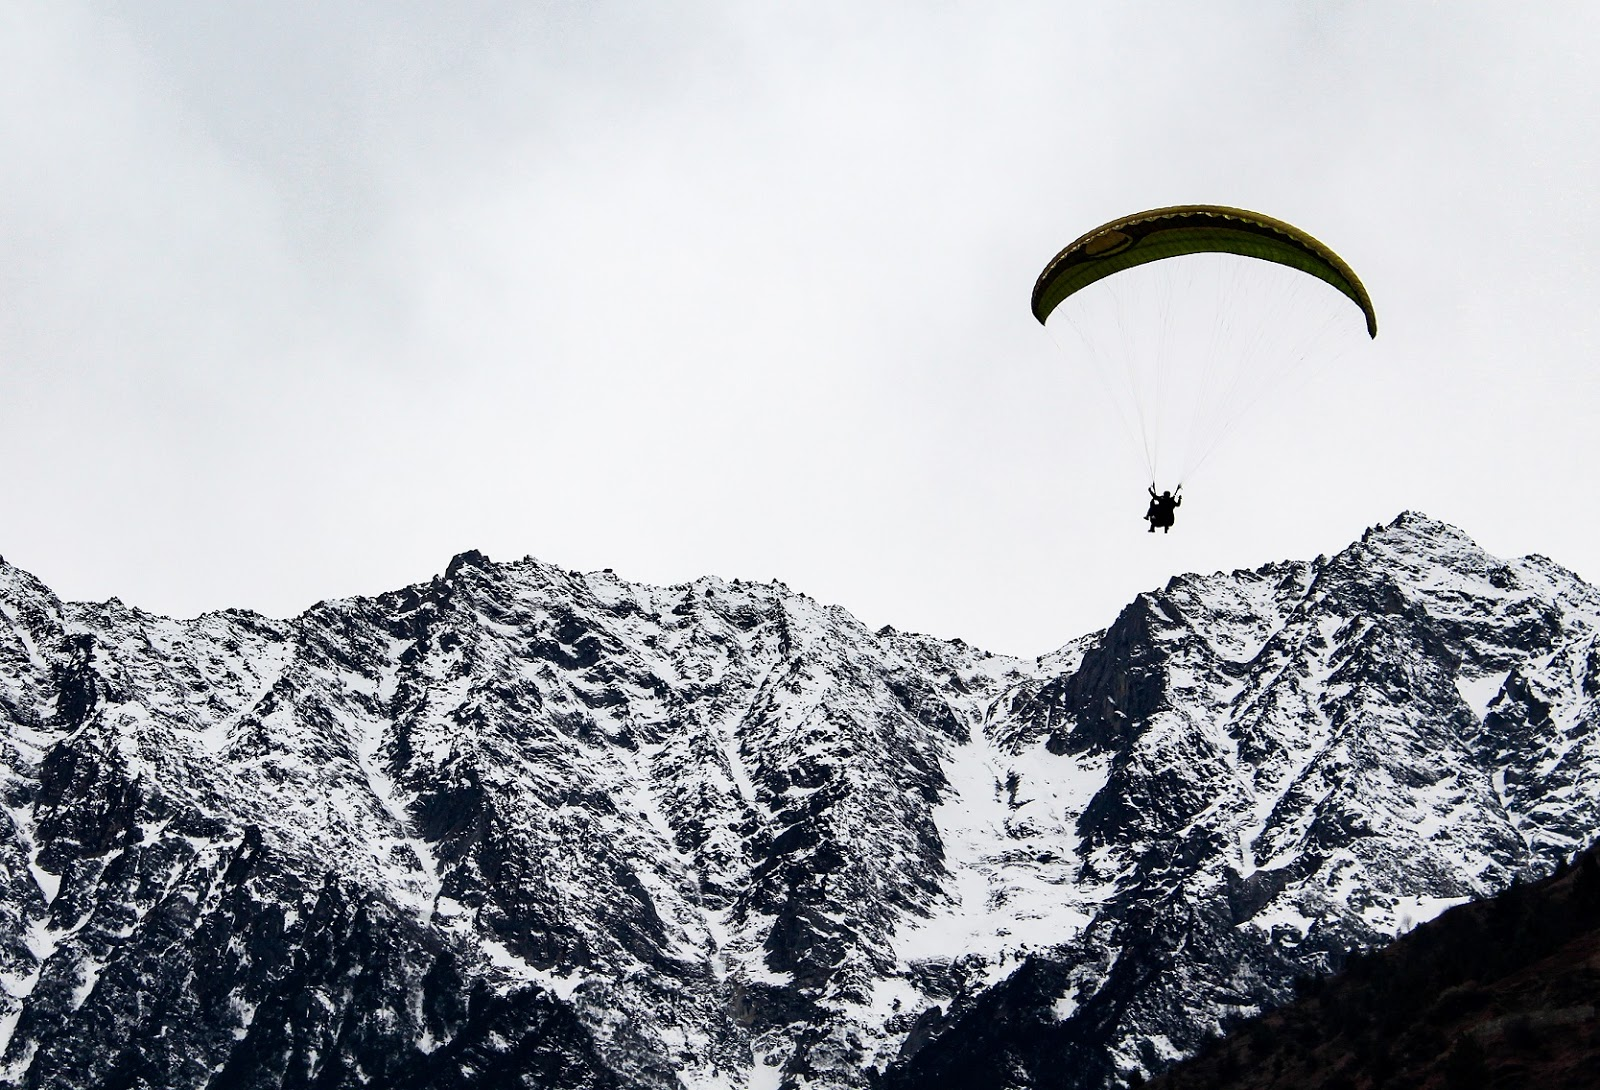 Paragliding at Solang the adventure valley amidst snow covered mountains